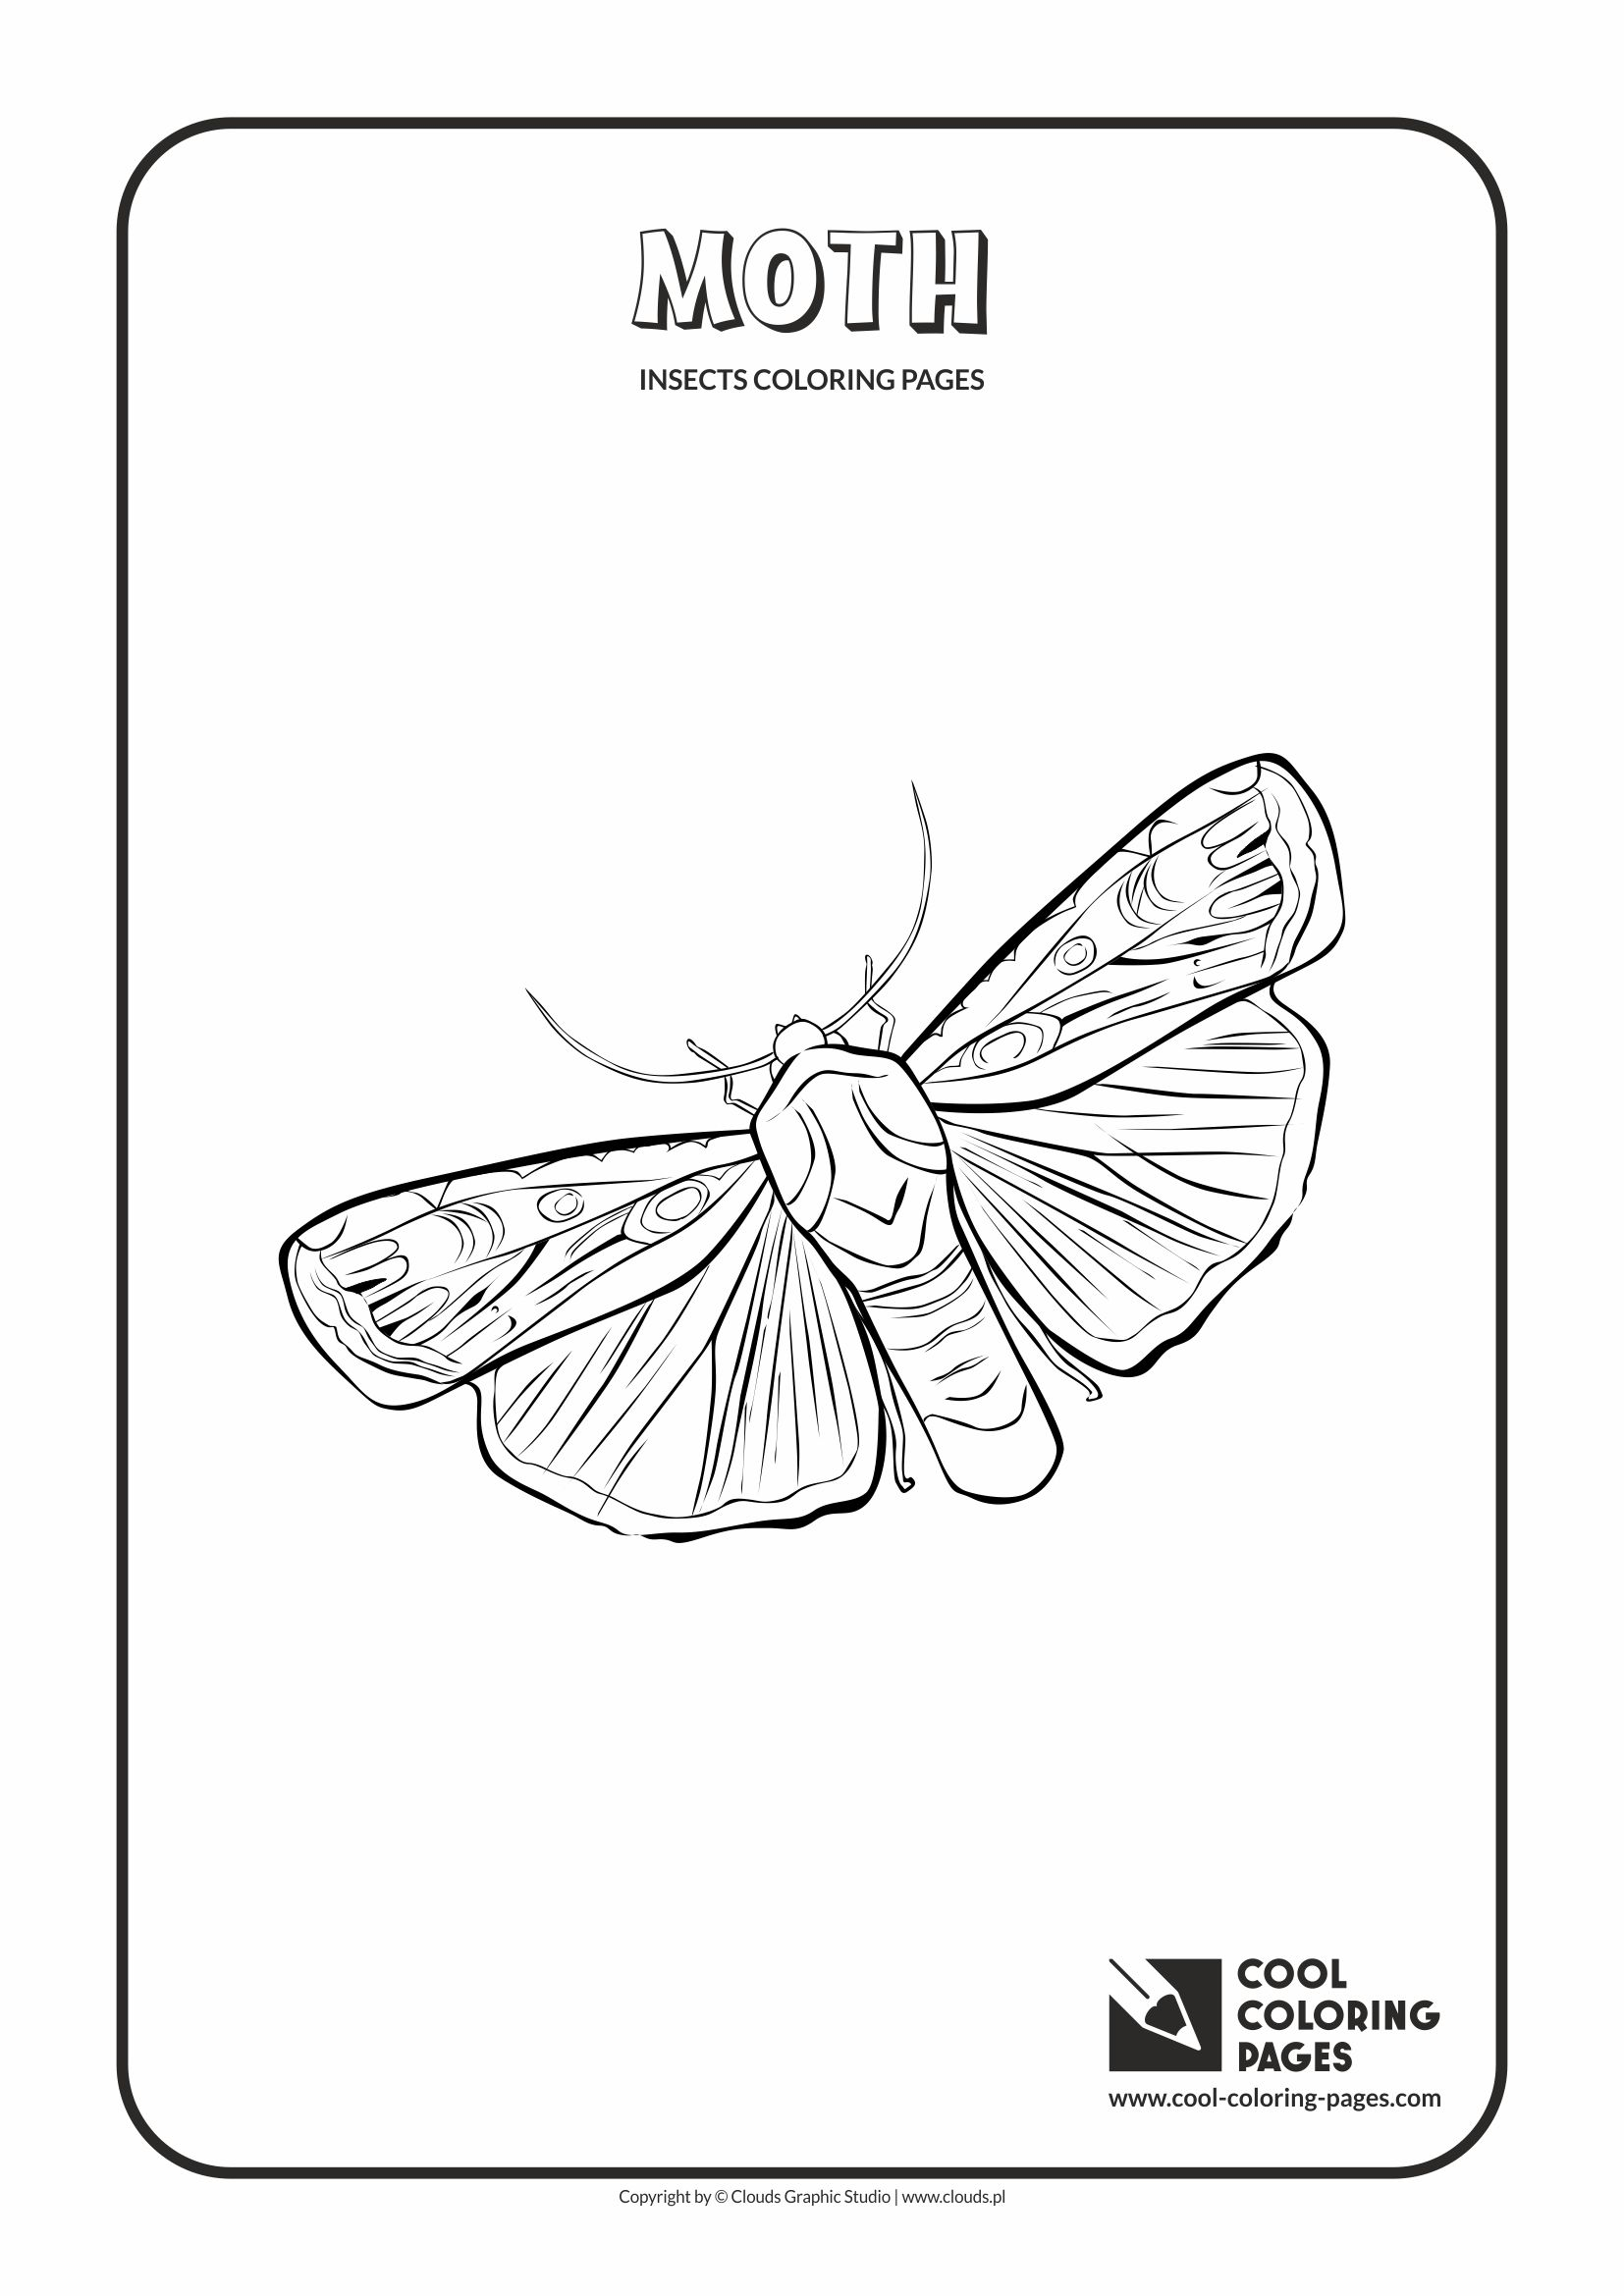 Cool Coloring Pages Moth Coloring Page